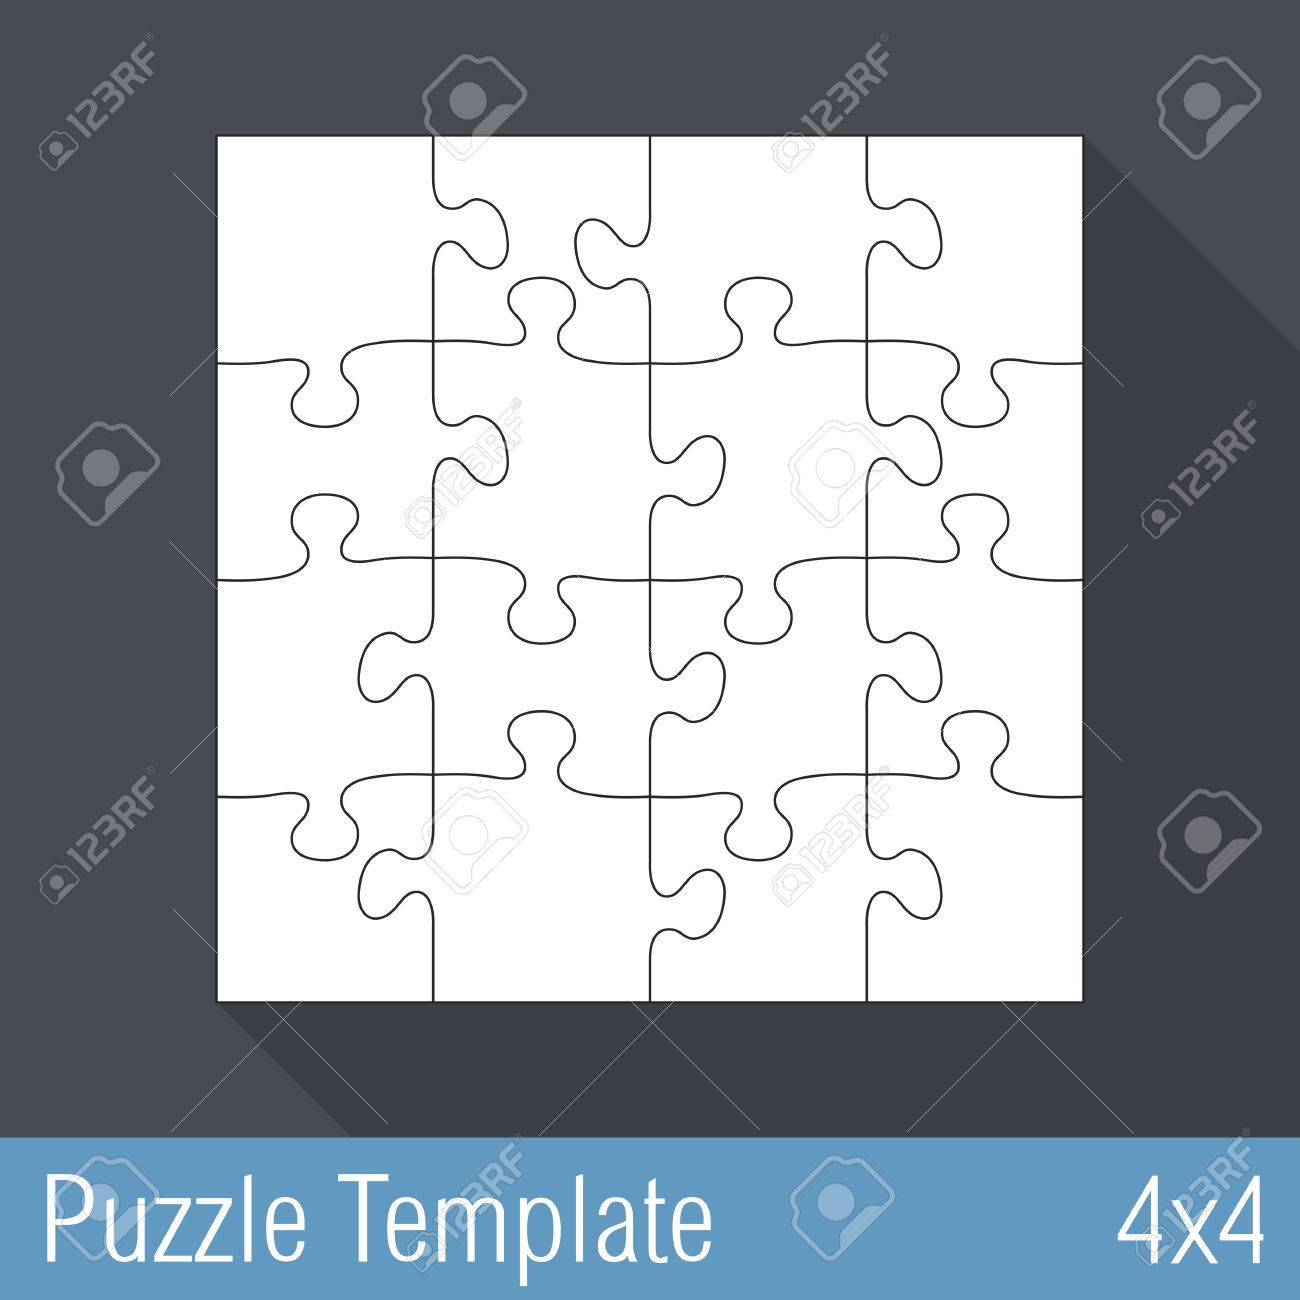 Jigsaw Puzzle Template 16 Pieces 4x4 Stock Vector